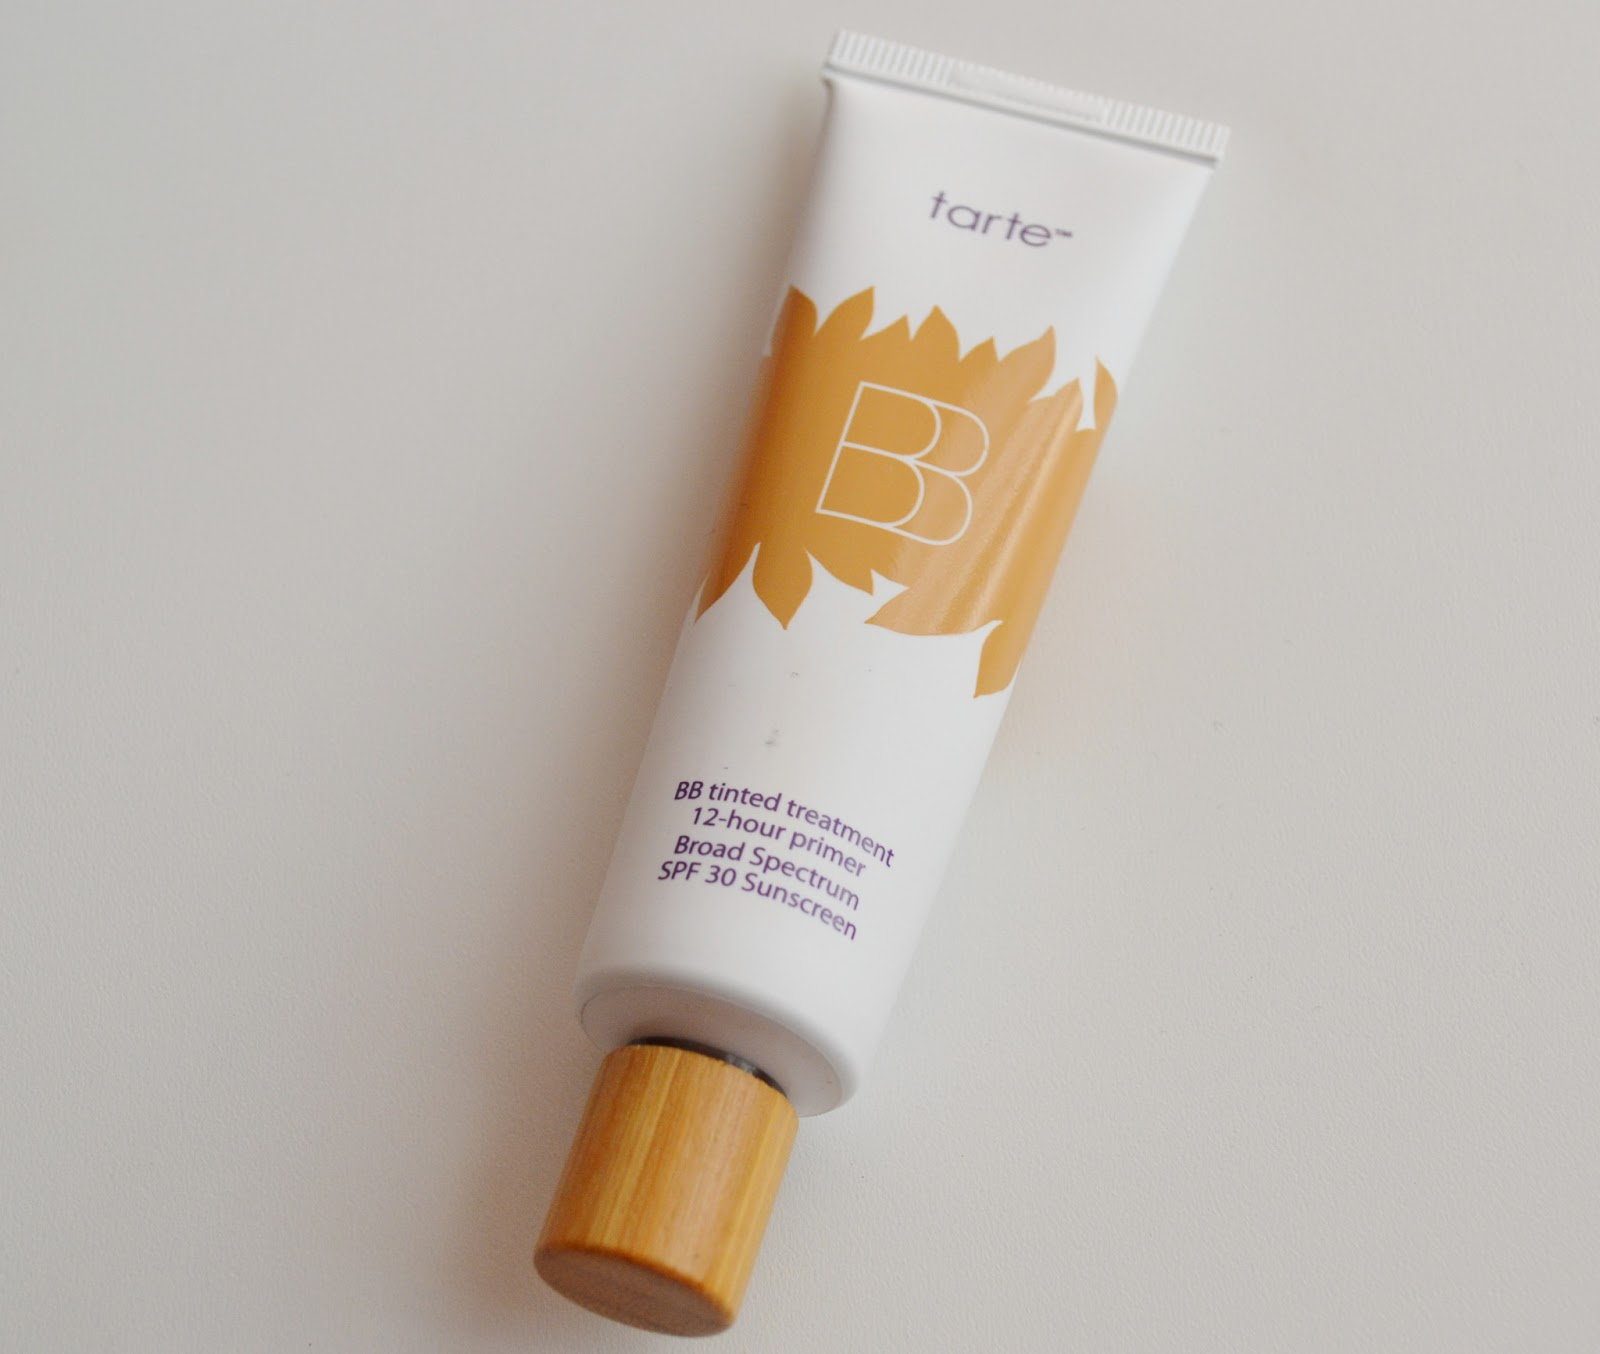 BB Tinted Treatment 12-Hour Primer SPF 30 by Tarte #20